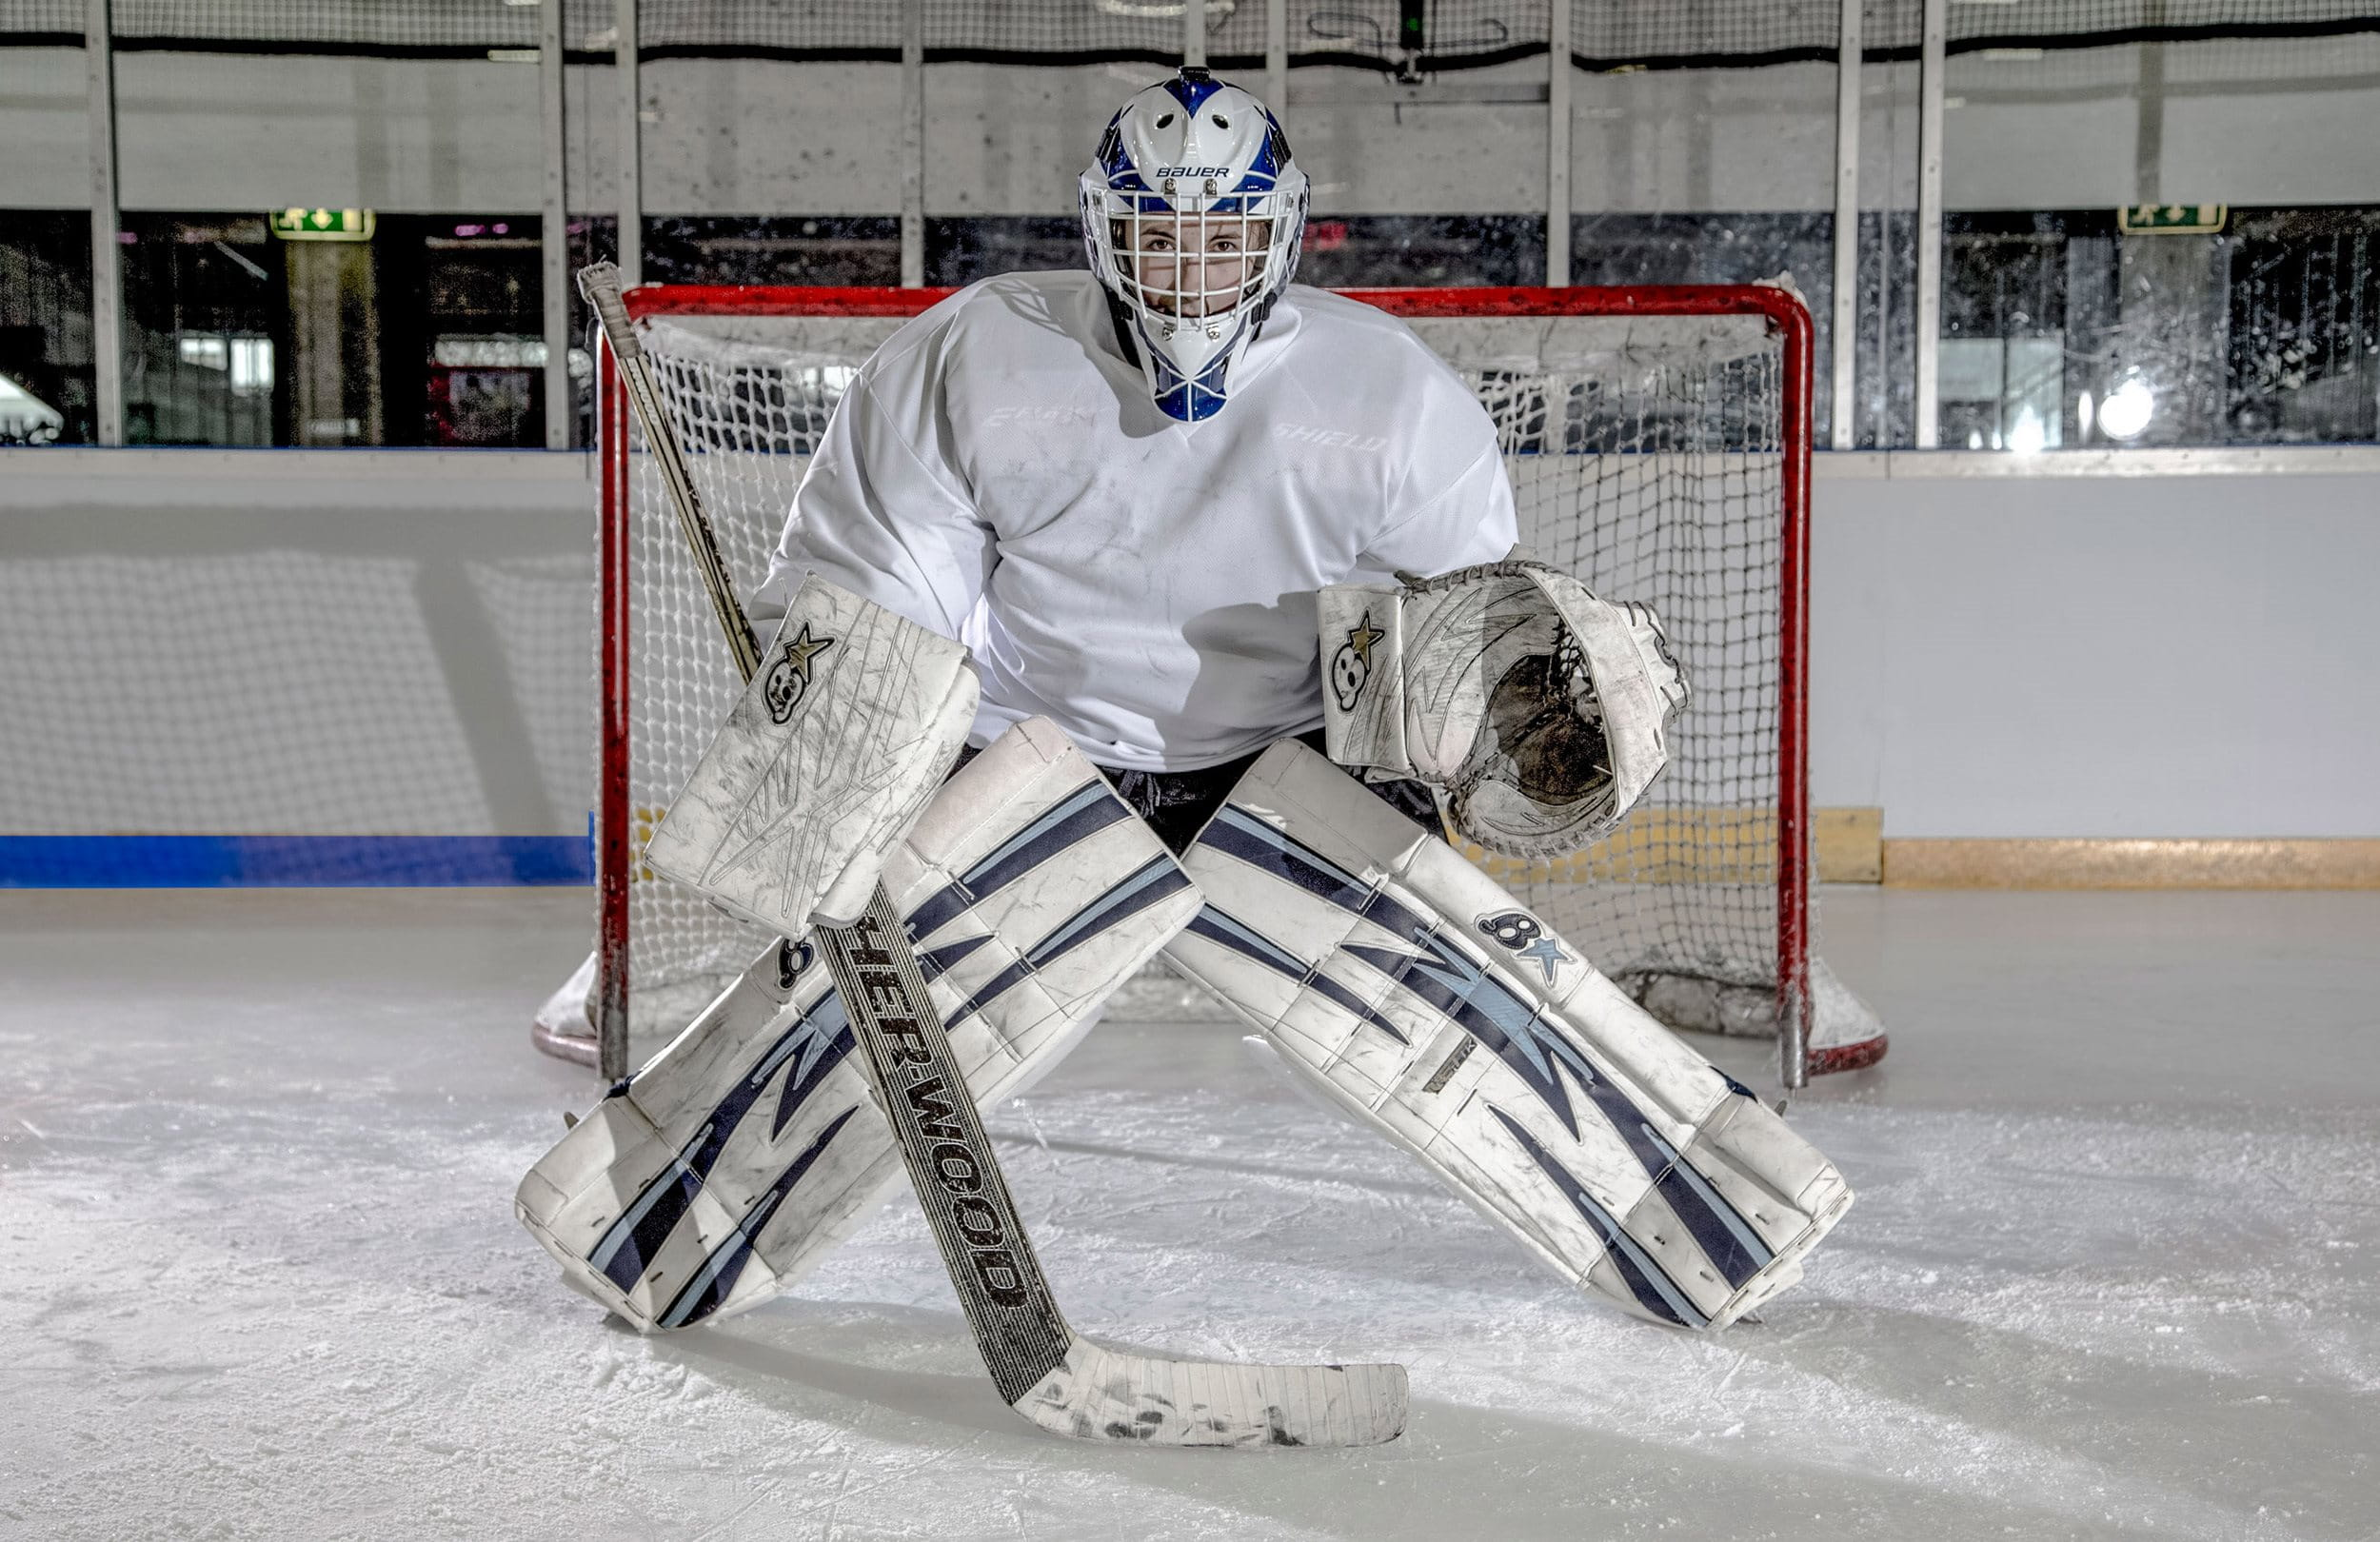 The ice hockey goalie concentrates